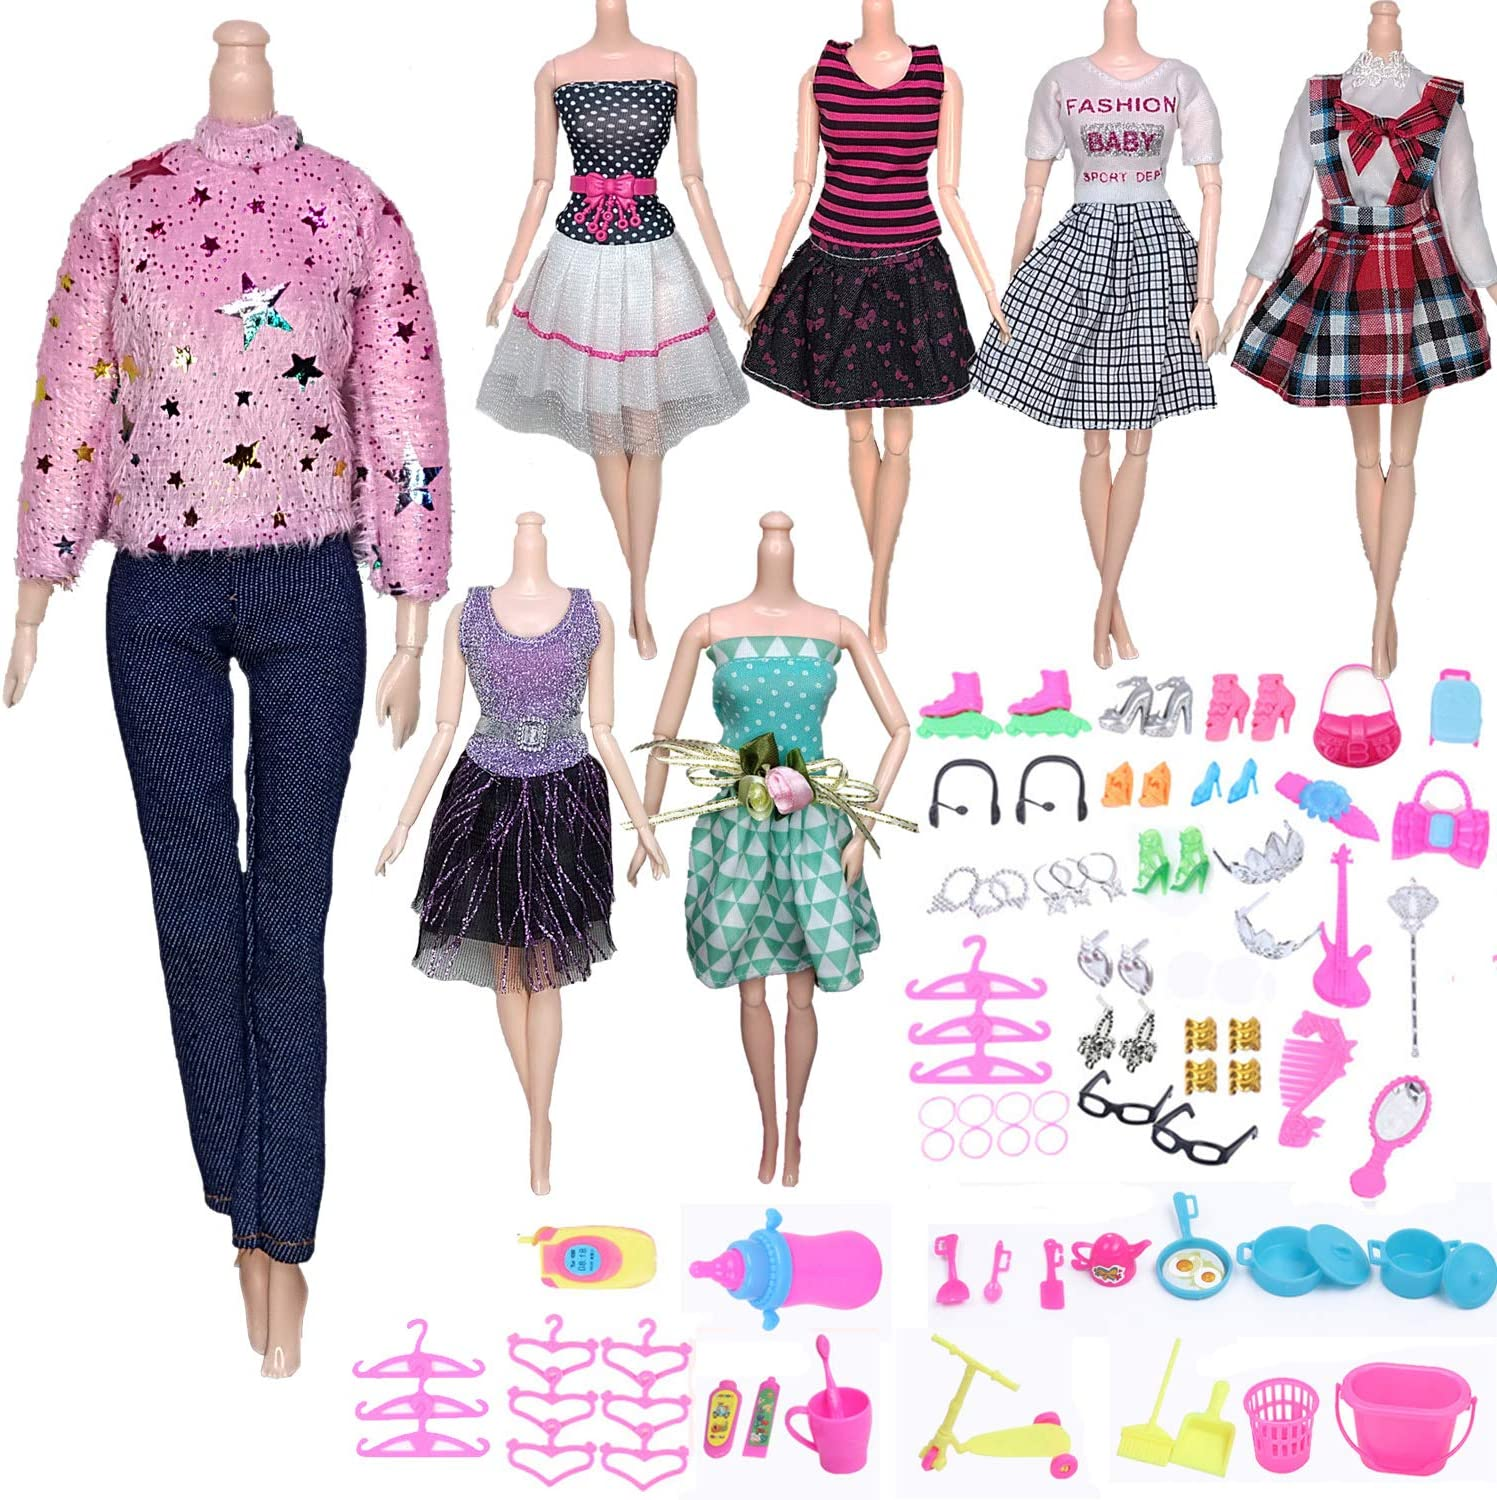 AMETUS Doll Clothes and Accessories for 11.5 inch Dolls, Party Dresses, Skirts, Pants, Sweater, Shirts, Shoes, Glasses, 91 PCS